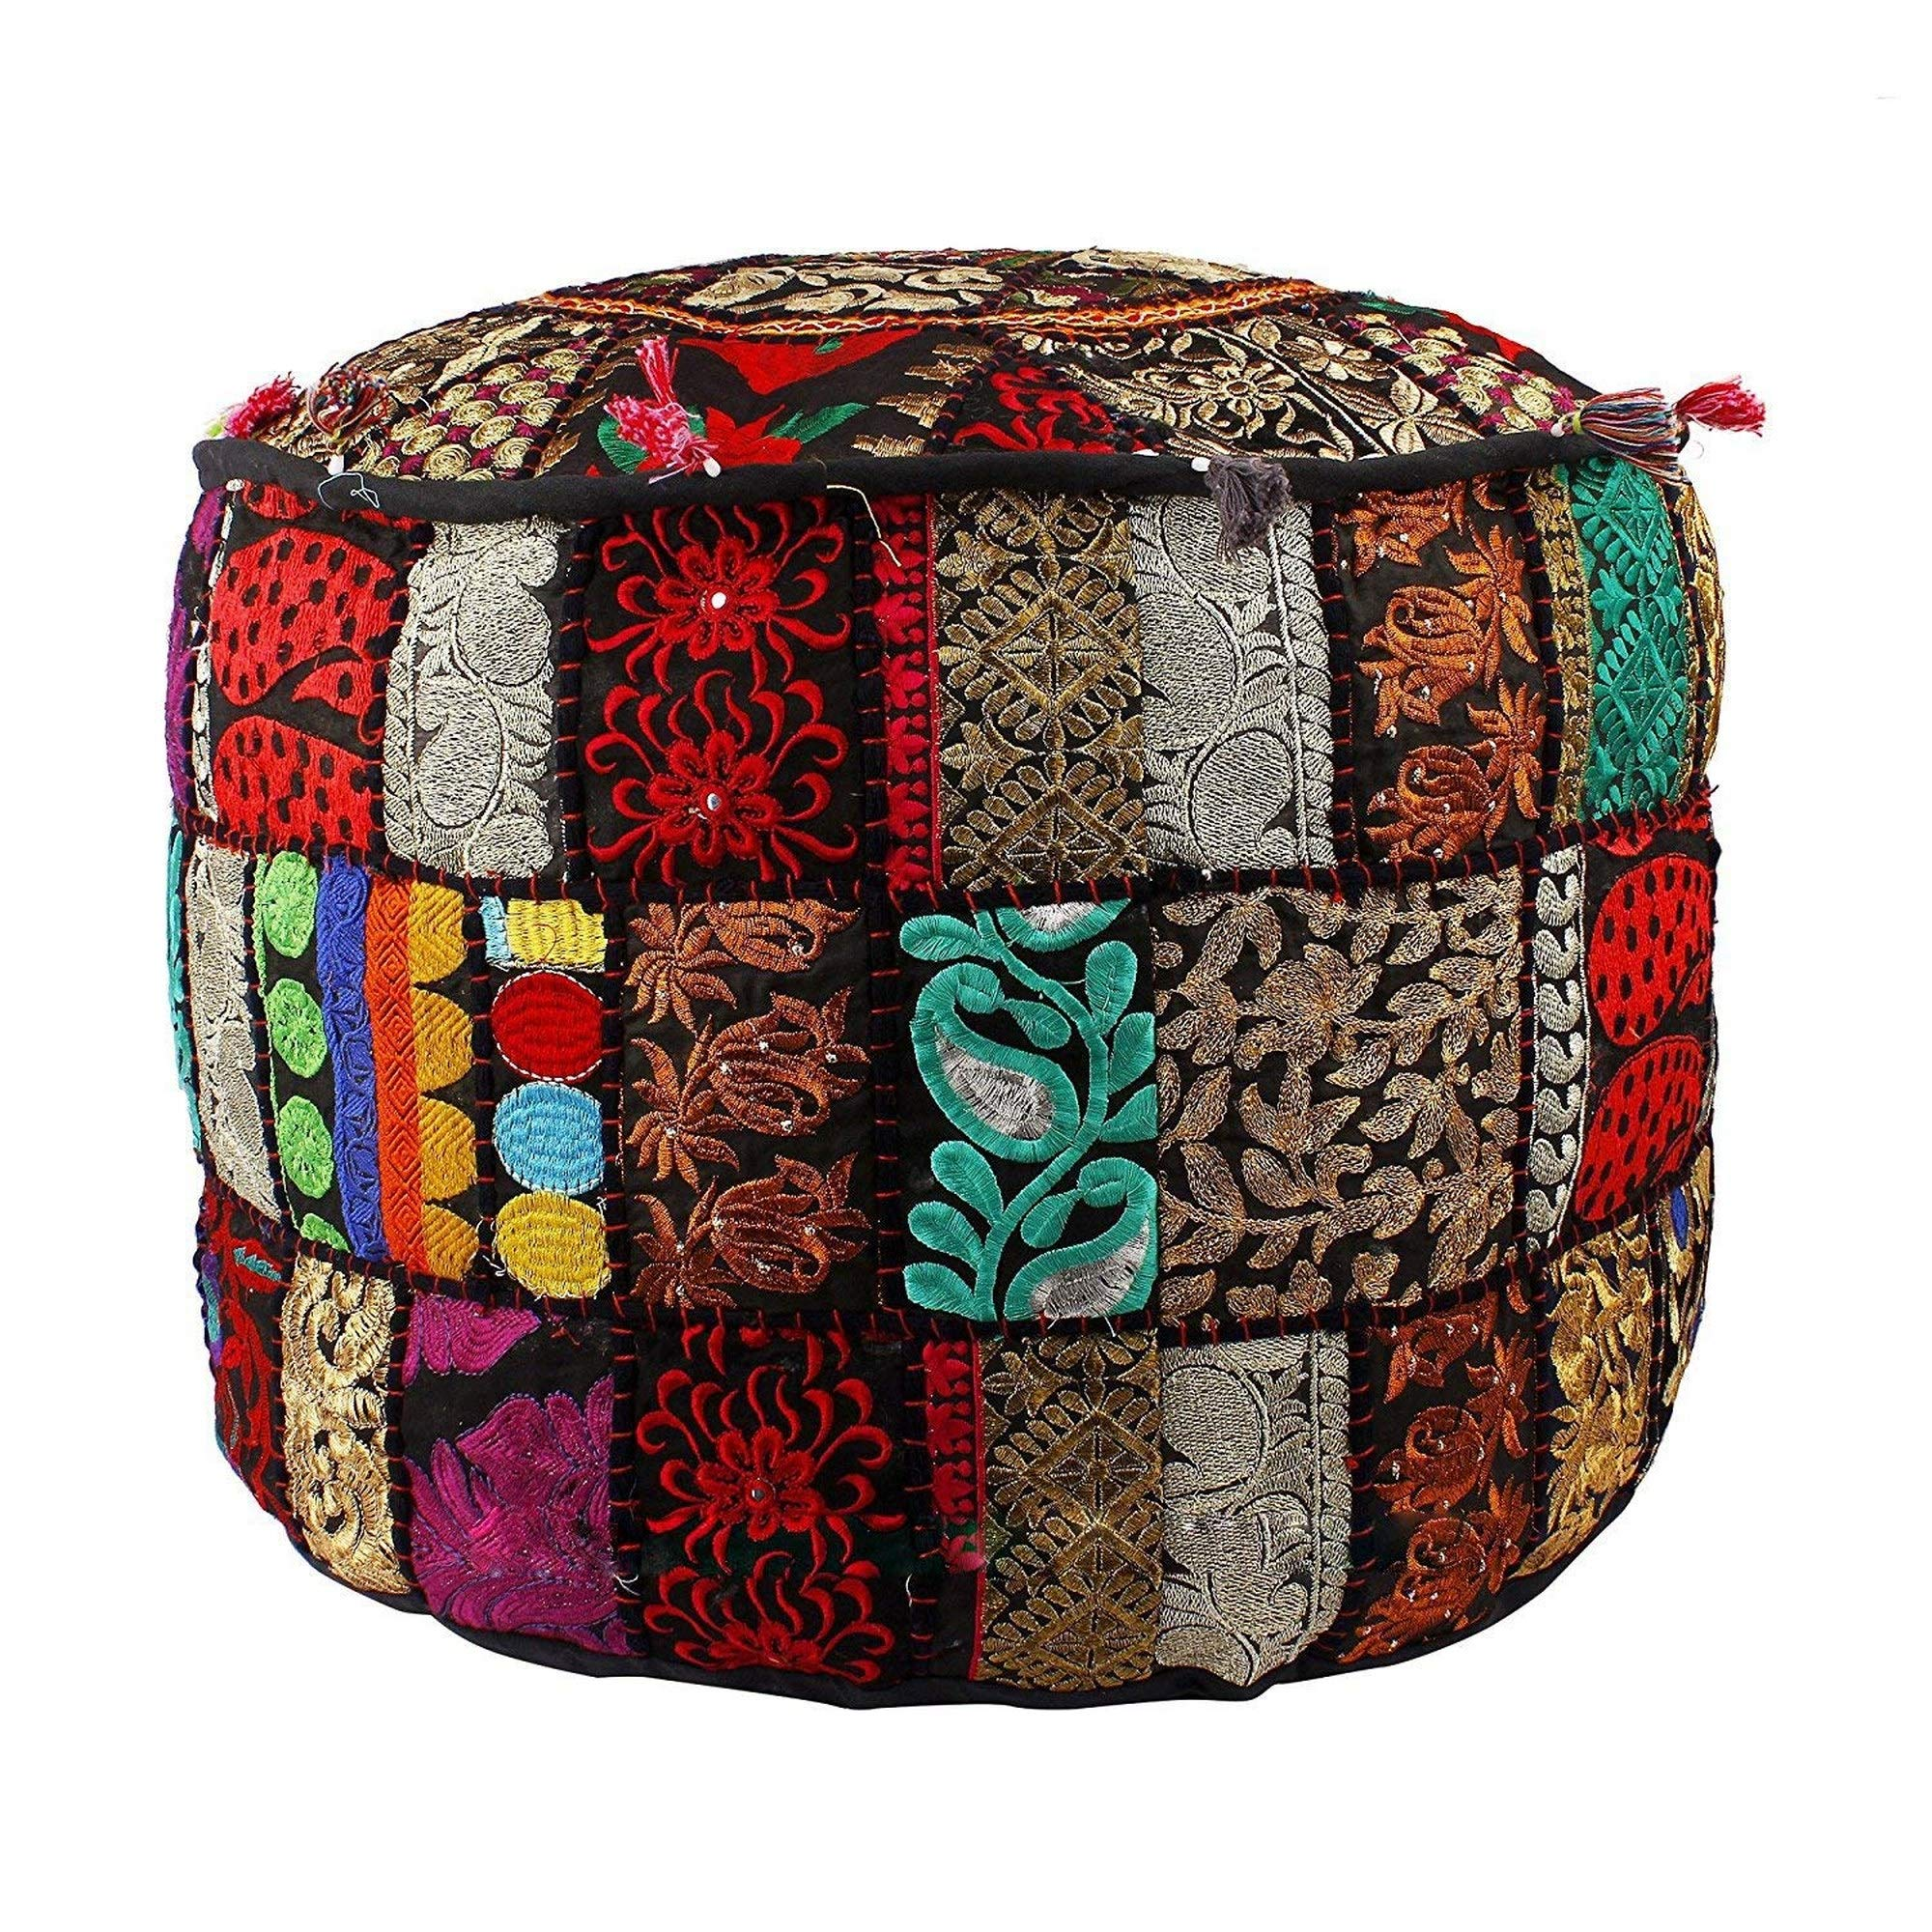 THE ART BOX Indian Vintage Ottoman Pouf Cover,Patchwork Ottoman, Living Room Patchwork Foot Stool Cover,Decorative Handmade Home Chair Cover by THE ART BOX